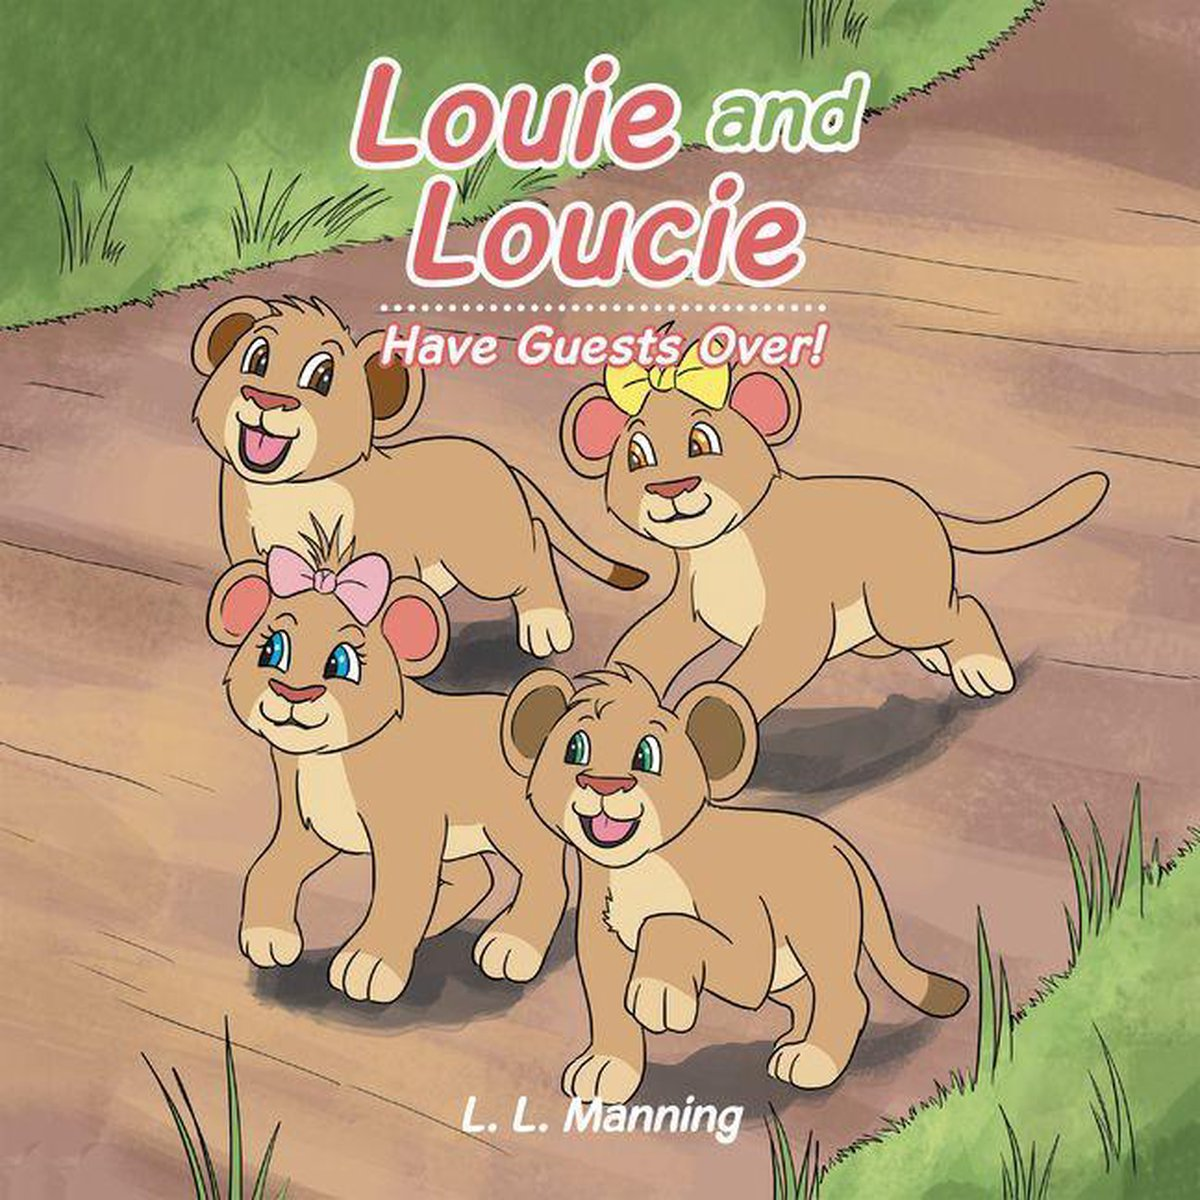 Louie and Loucie